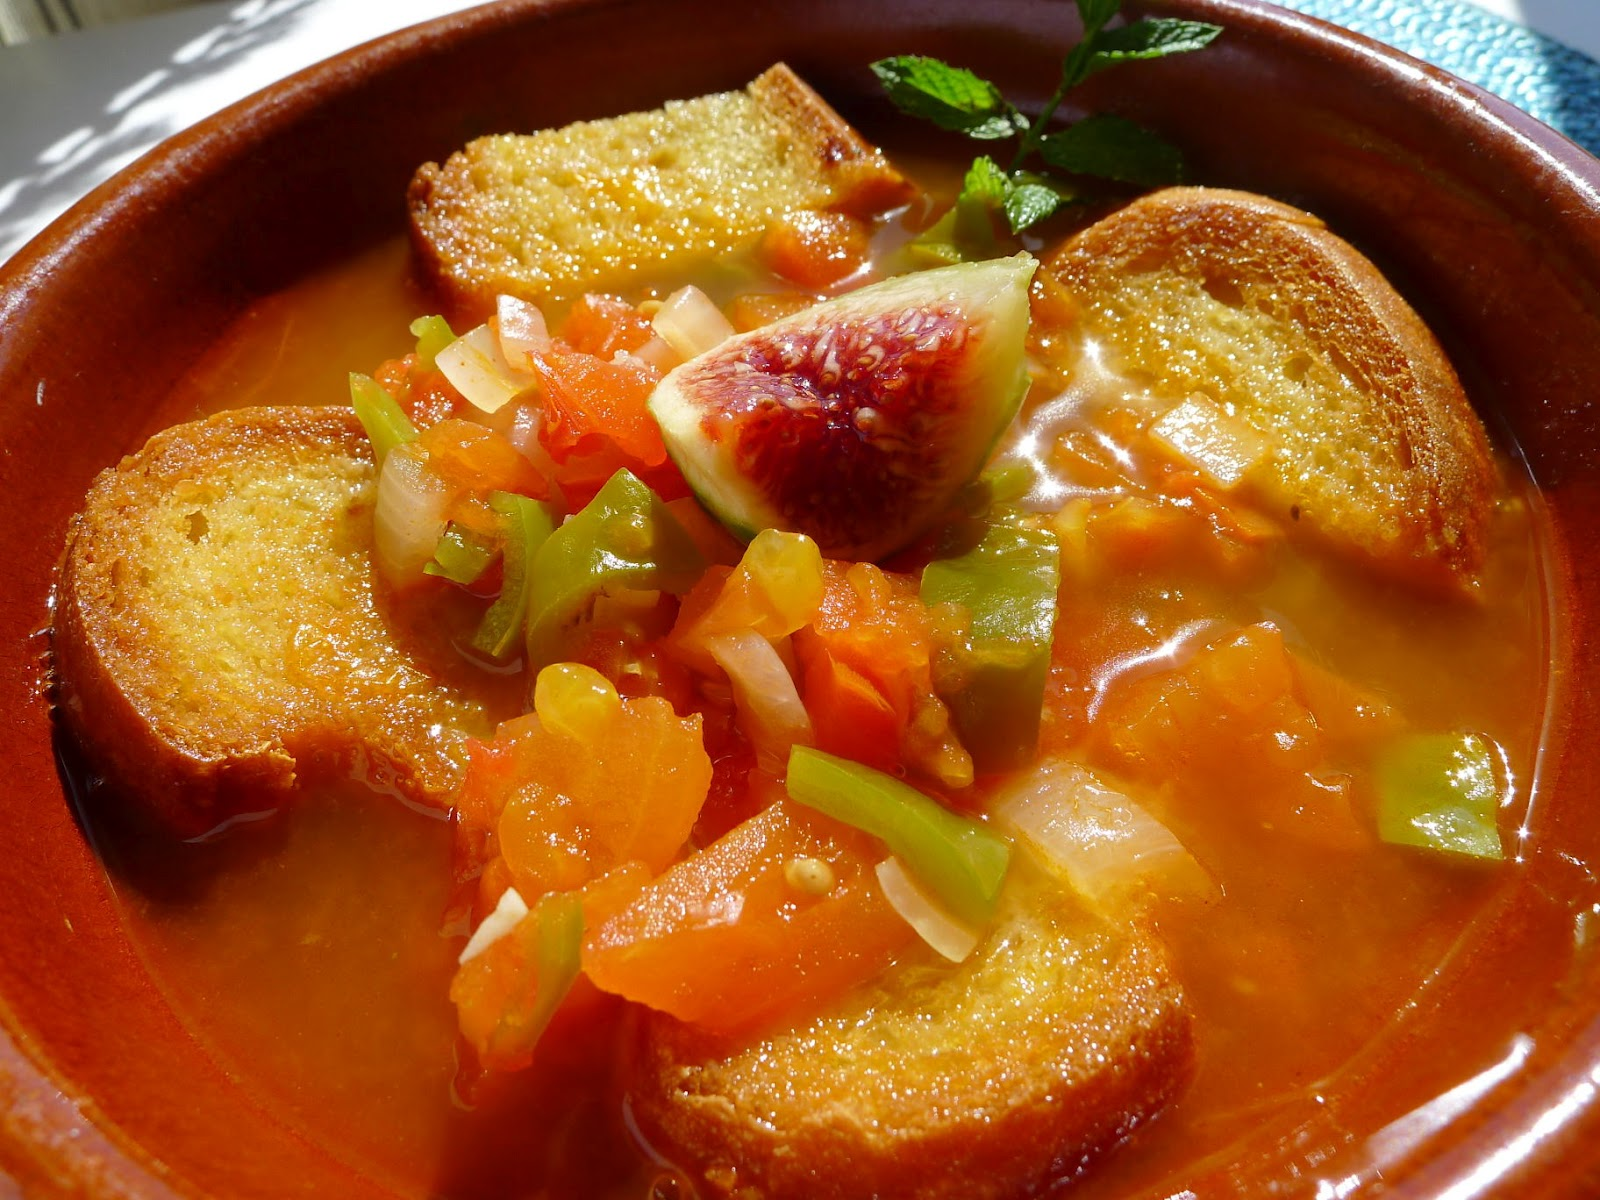 Hot gazpacho, a cooked version, served in a cazuela.